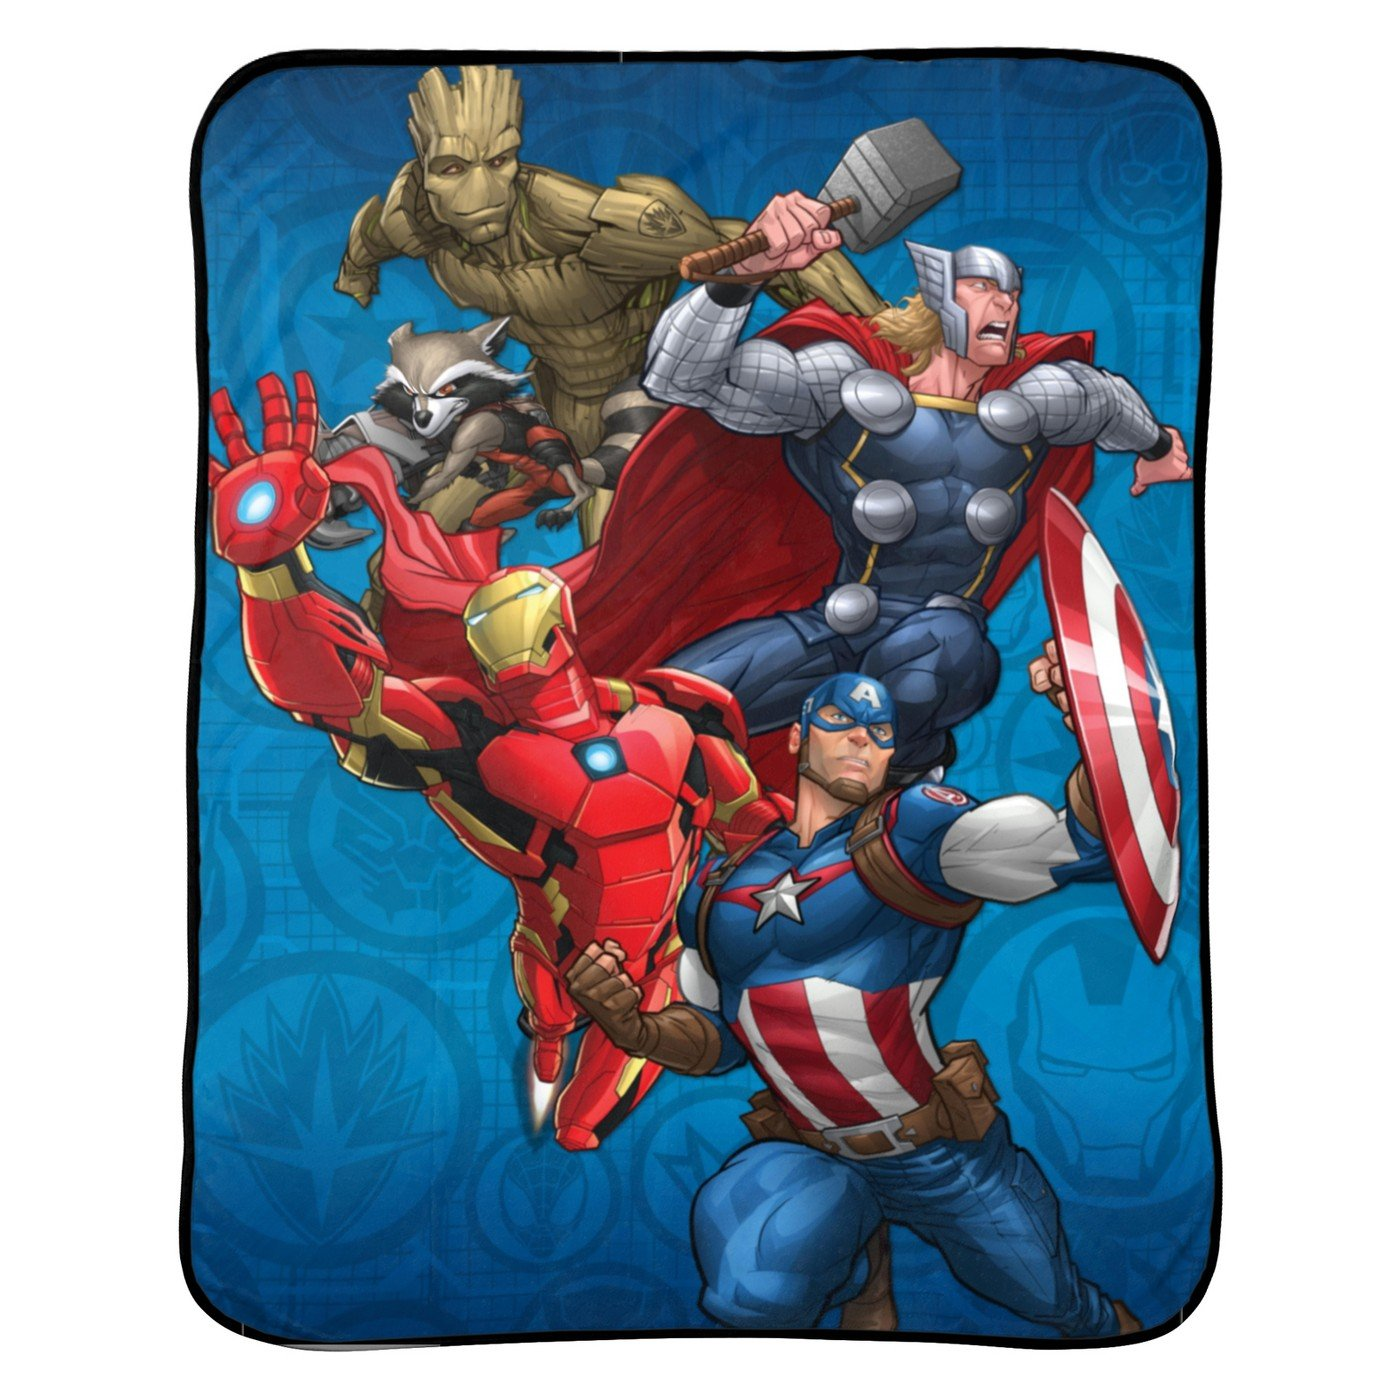 Marvel Avengers Blanket Kids Bedding Throw - 46 in. x 60 in. Jay Franco & Sons Inc. CX33-01/18L0343570